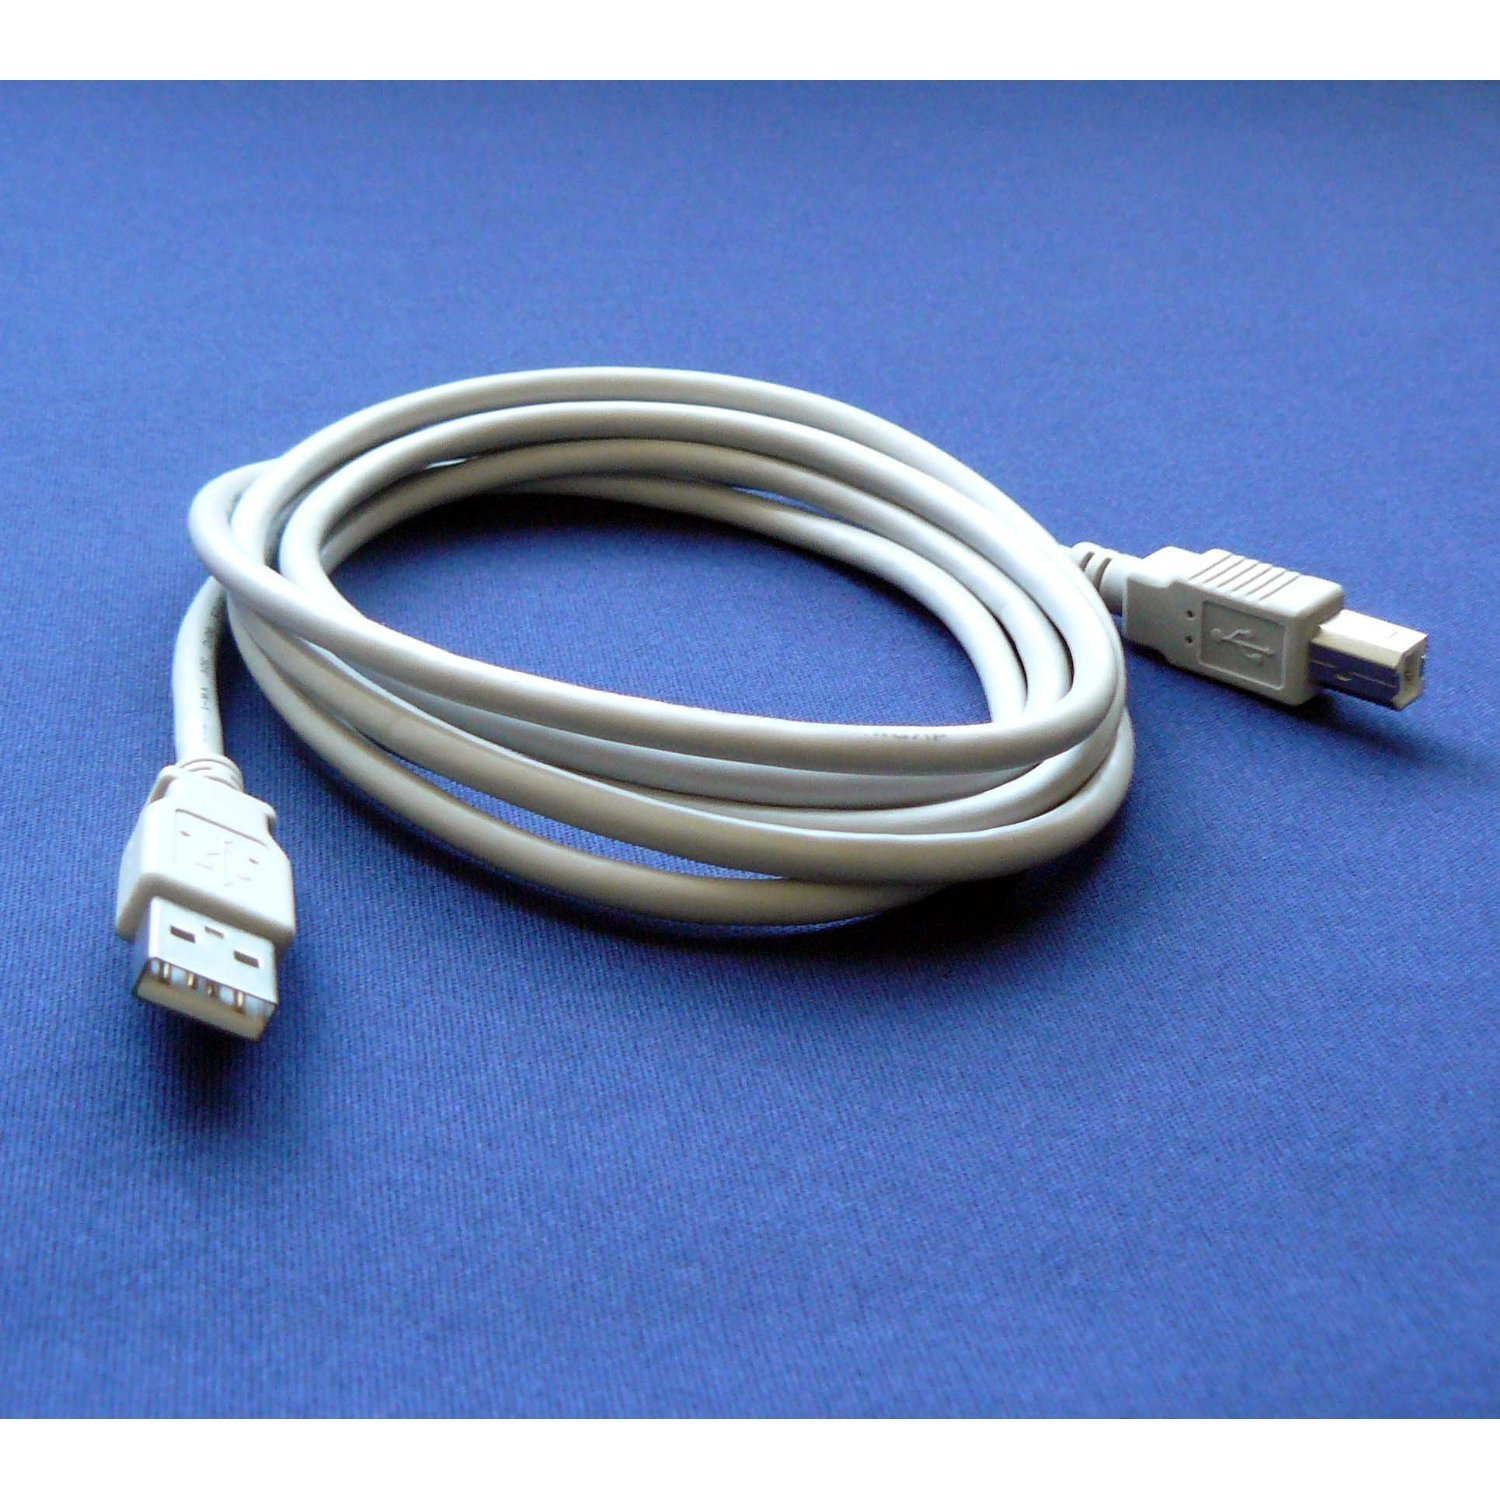 Primary image for Dell 926 Printer Compatible USB 2.0 Cable Cord for PC, Notebook, Macbook - 6 ...